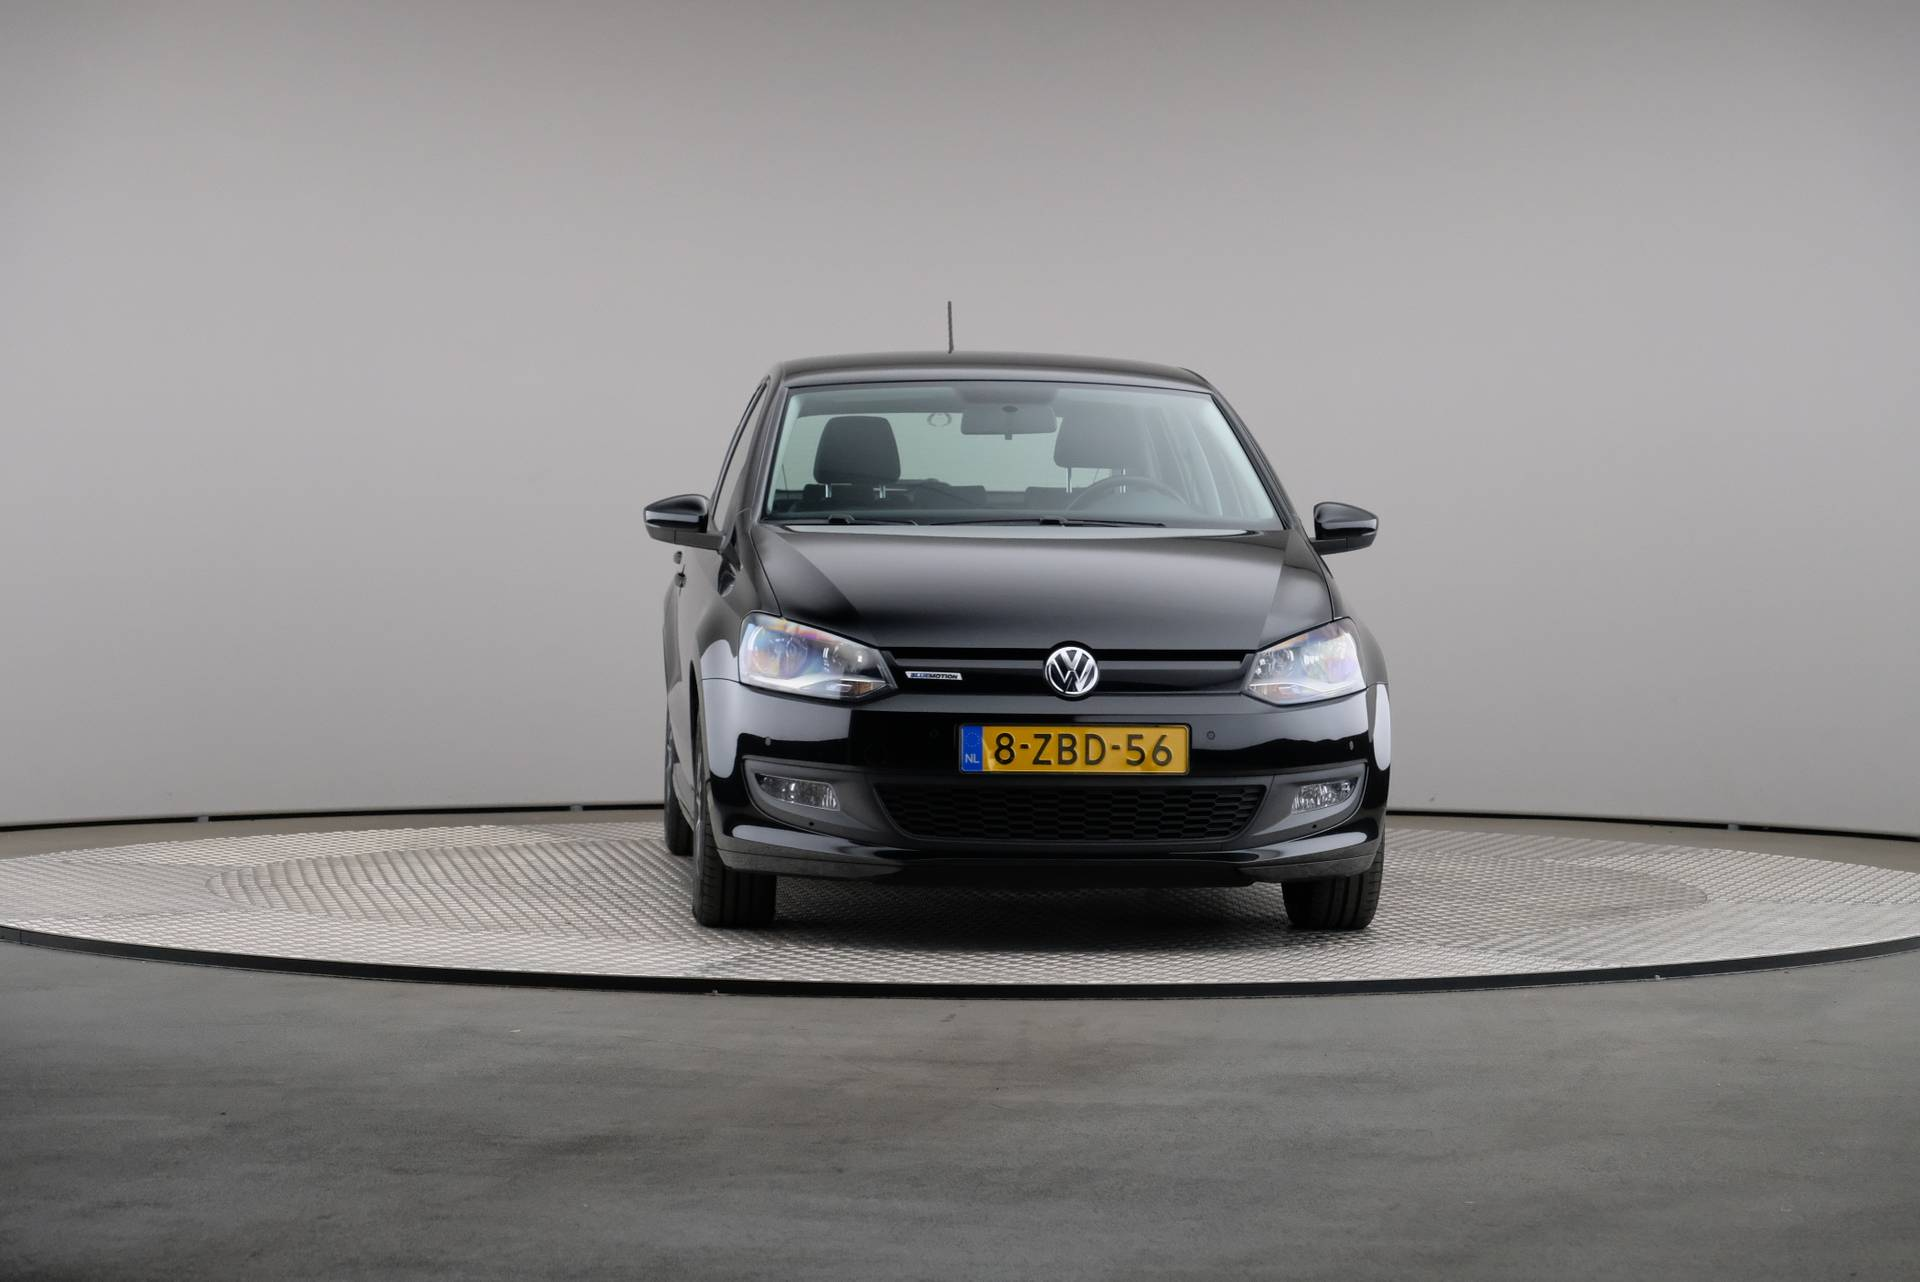 Volkswagen Polo 1.4 TDI BlueMotion, Executive, Airco, Navigatie, 360-image32